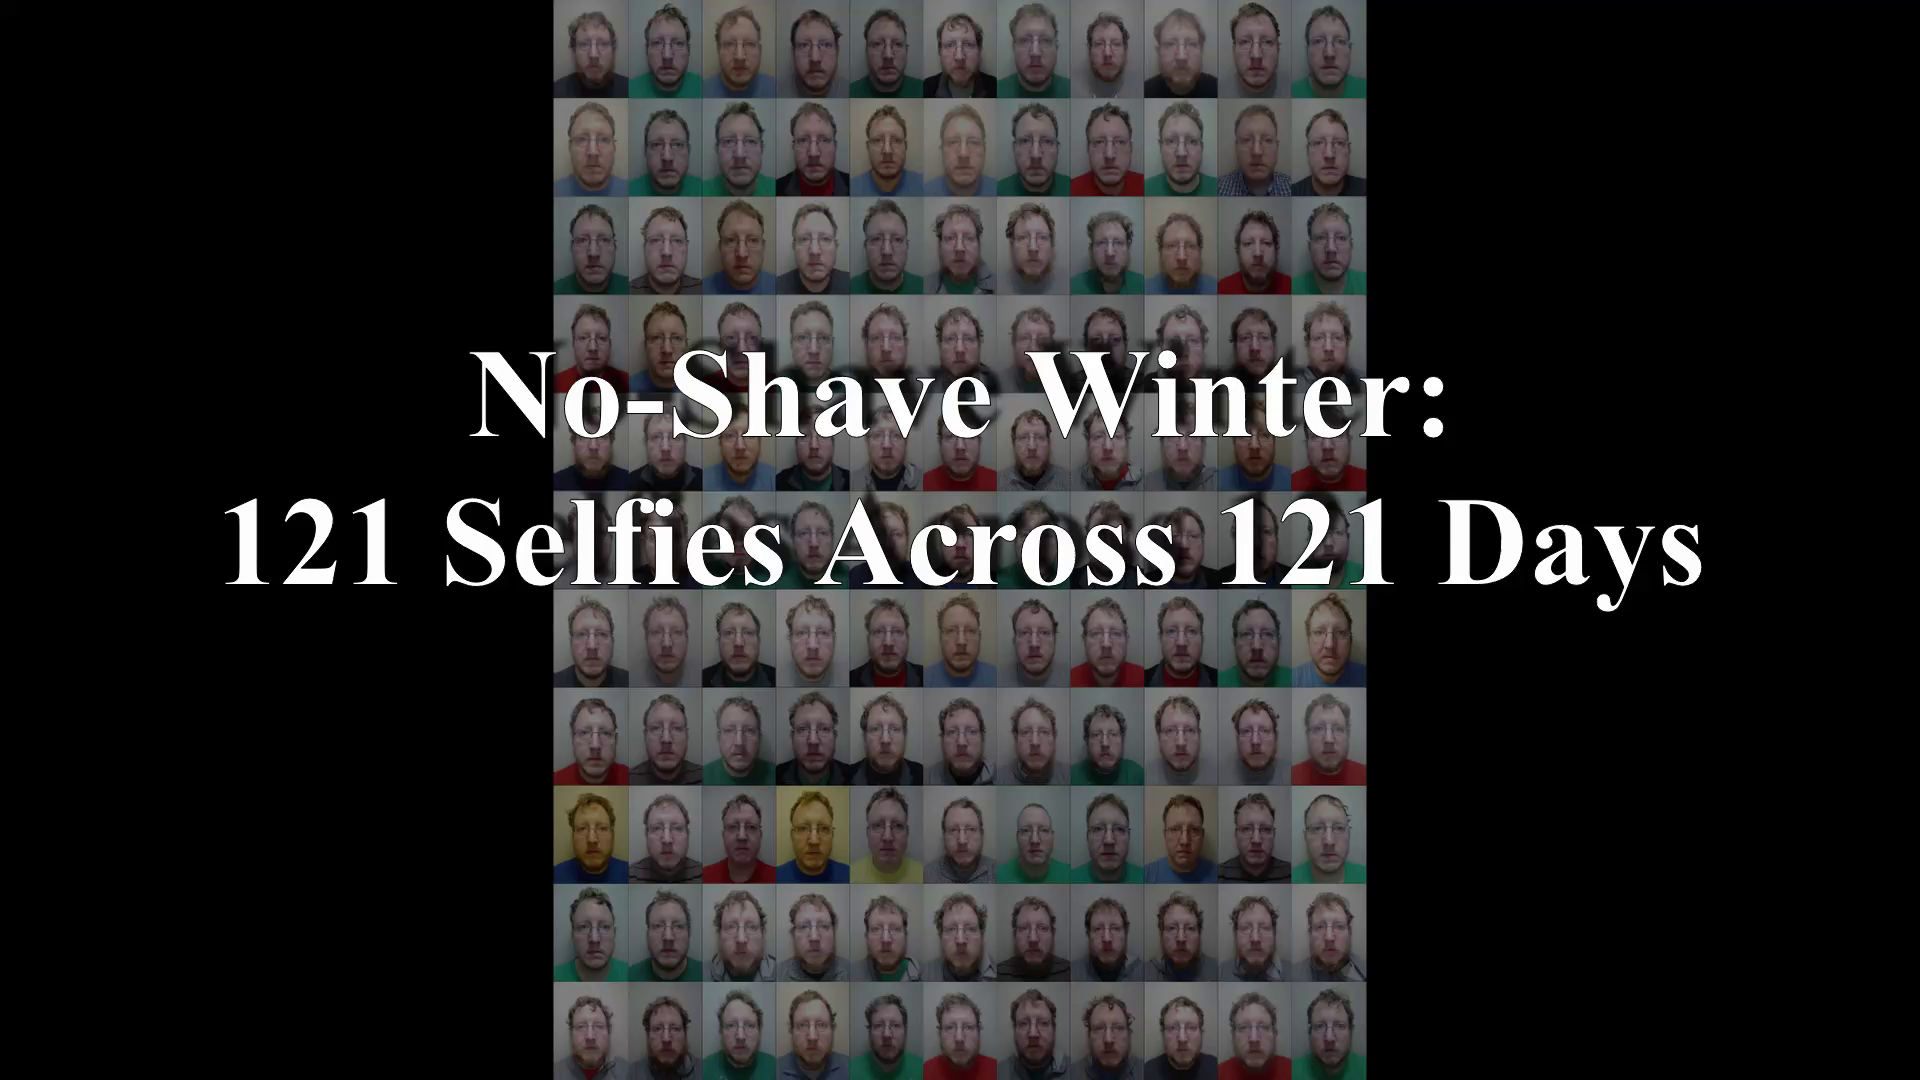 No-Shave Winter - 121 Selfies Across 121 Days